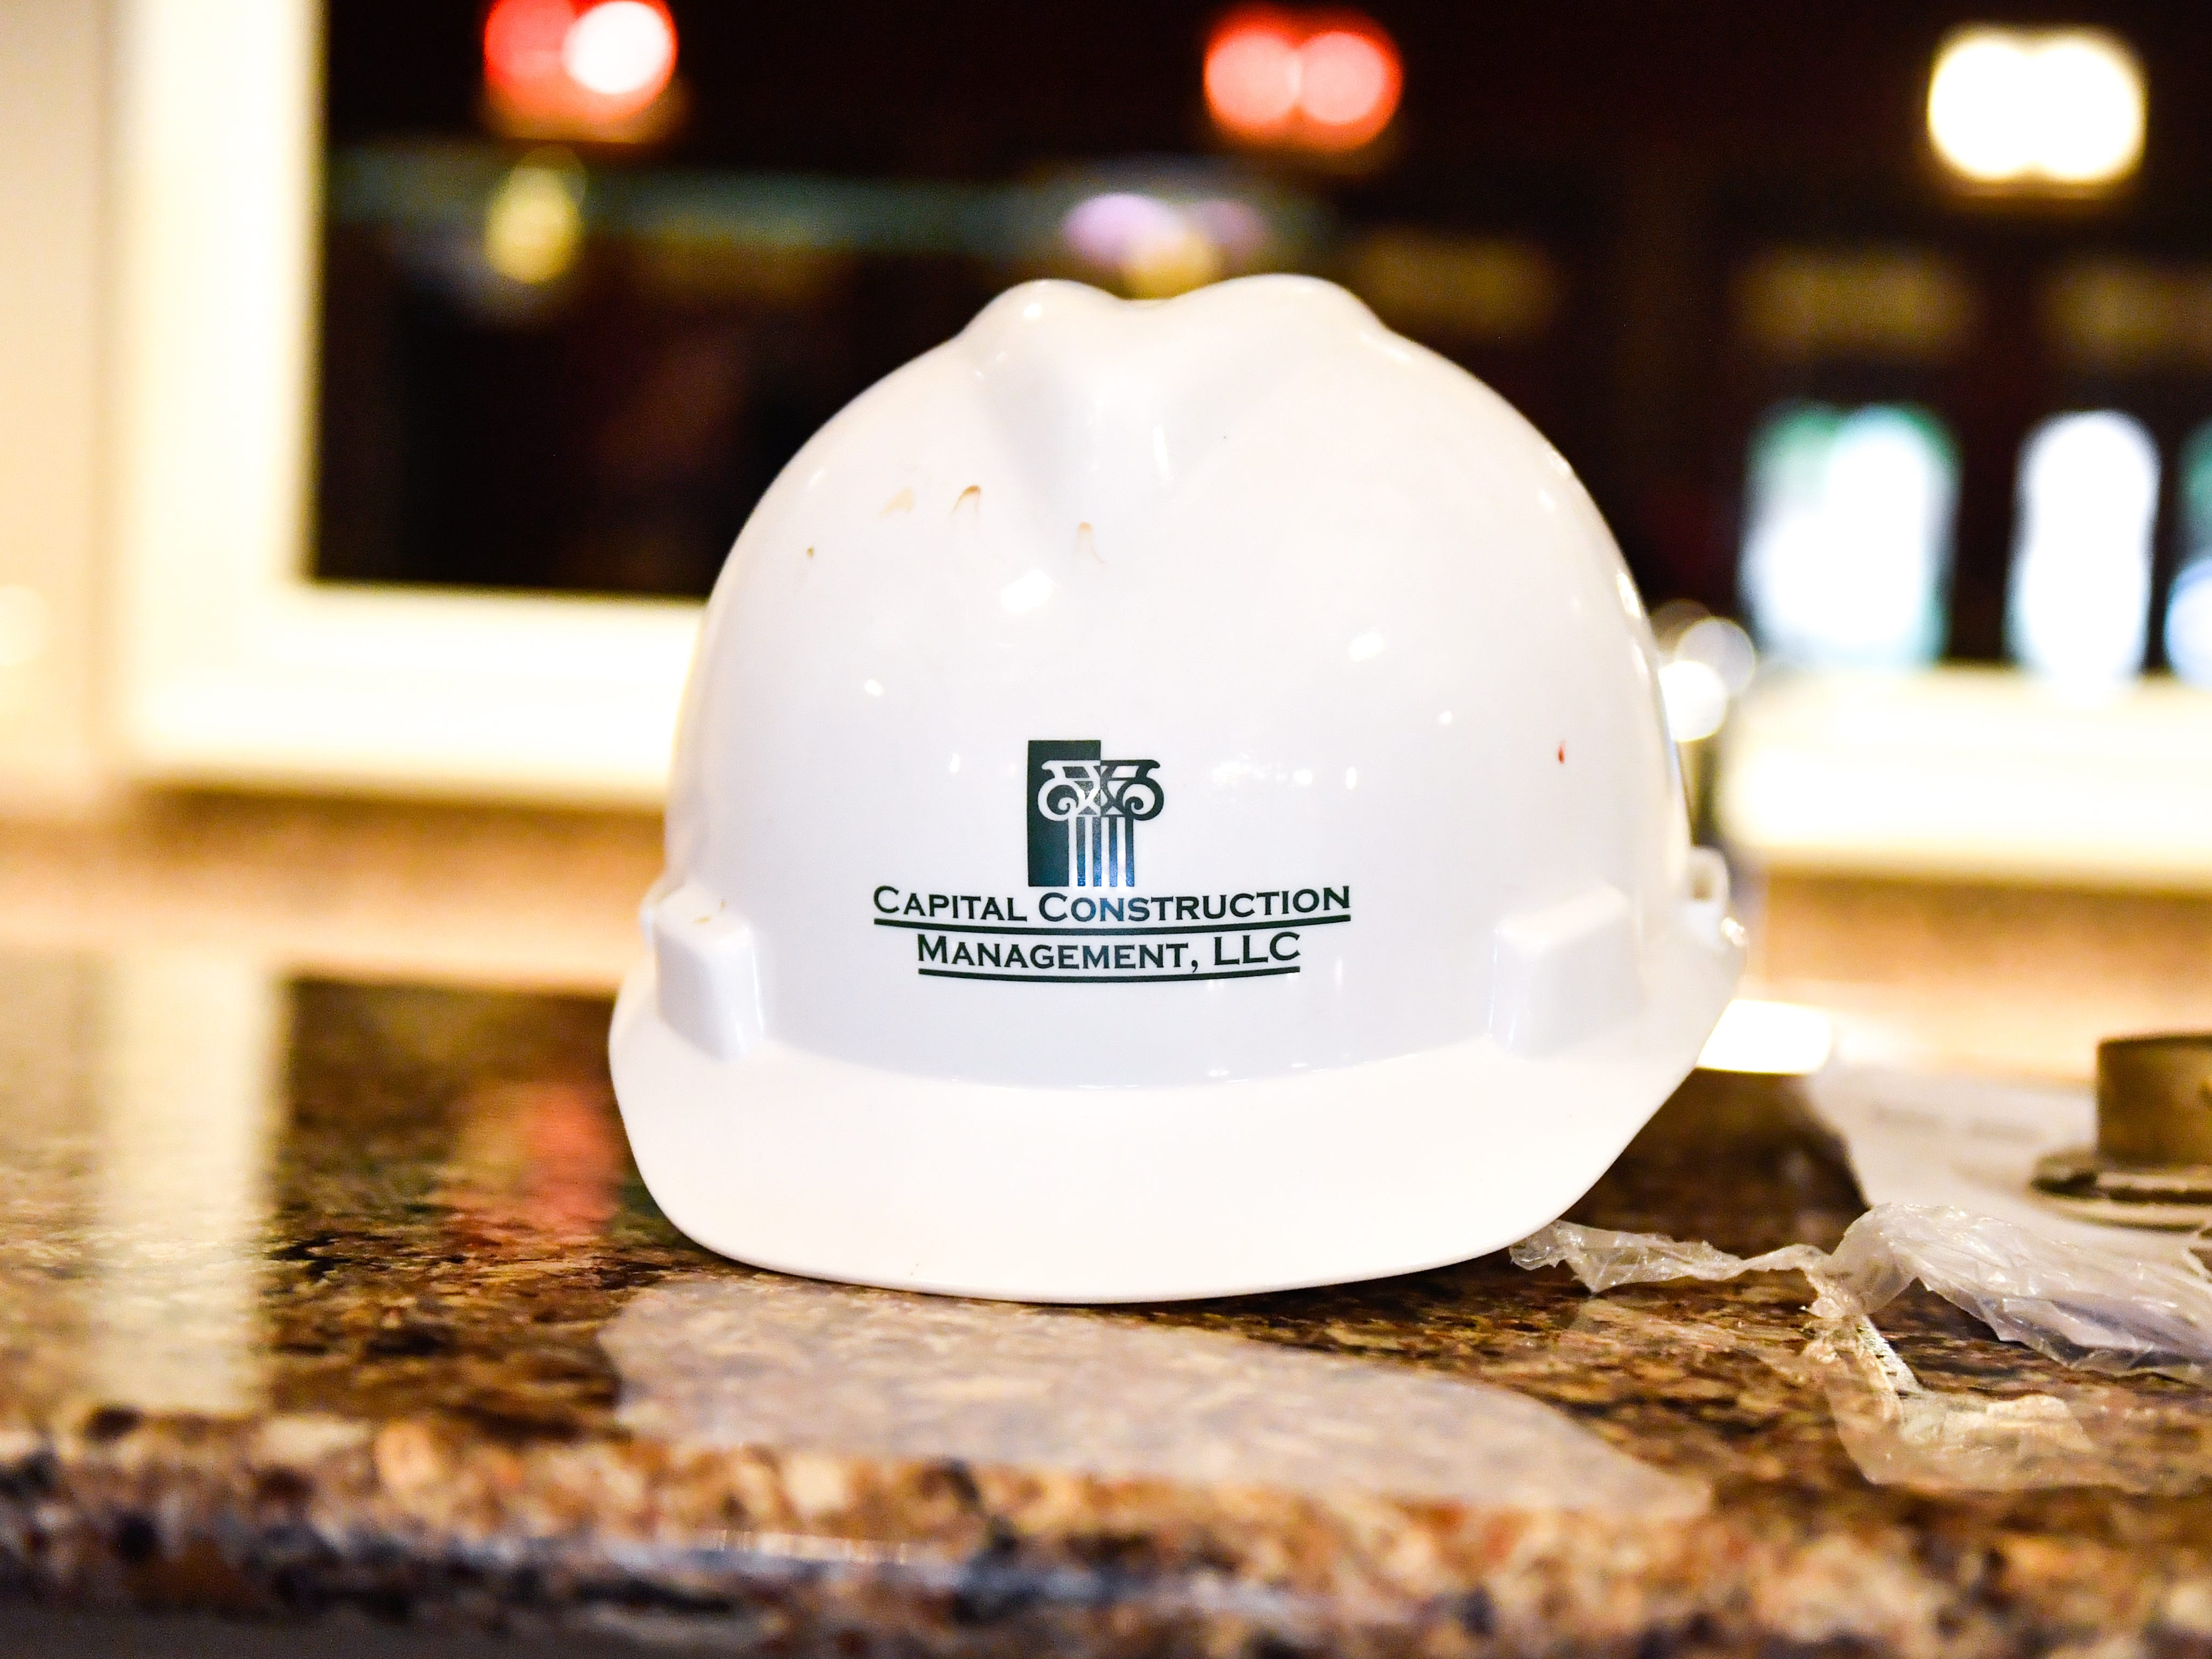 All workers wear construction hats to prevent head injuries while renovating, October 5, 2018.